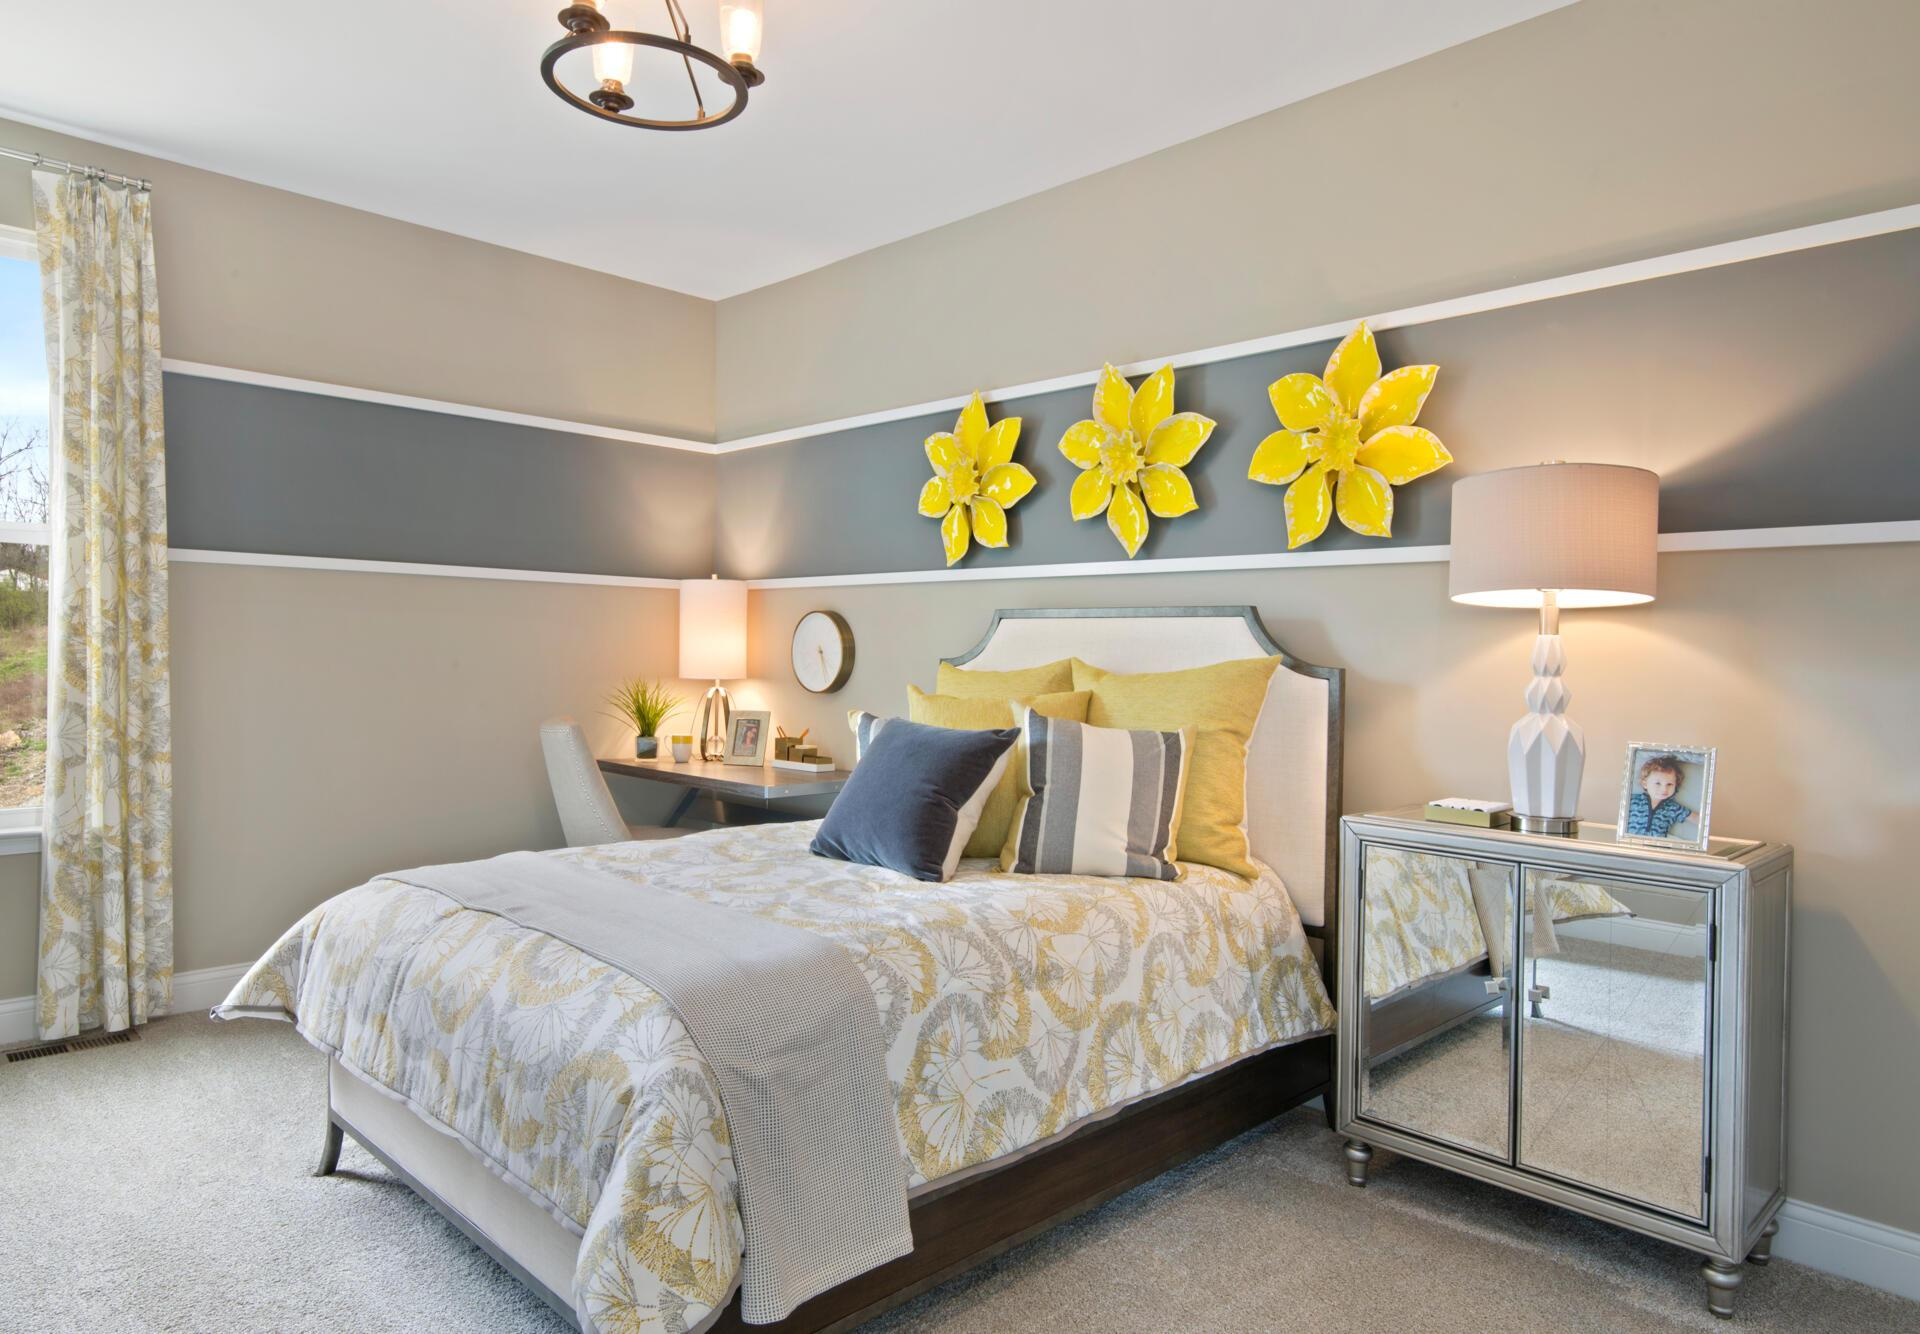 Bedroom featured in the Ash Lawn By Drees Homes in Cincinnati, OH